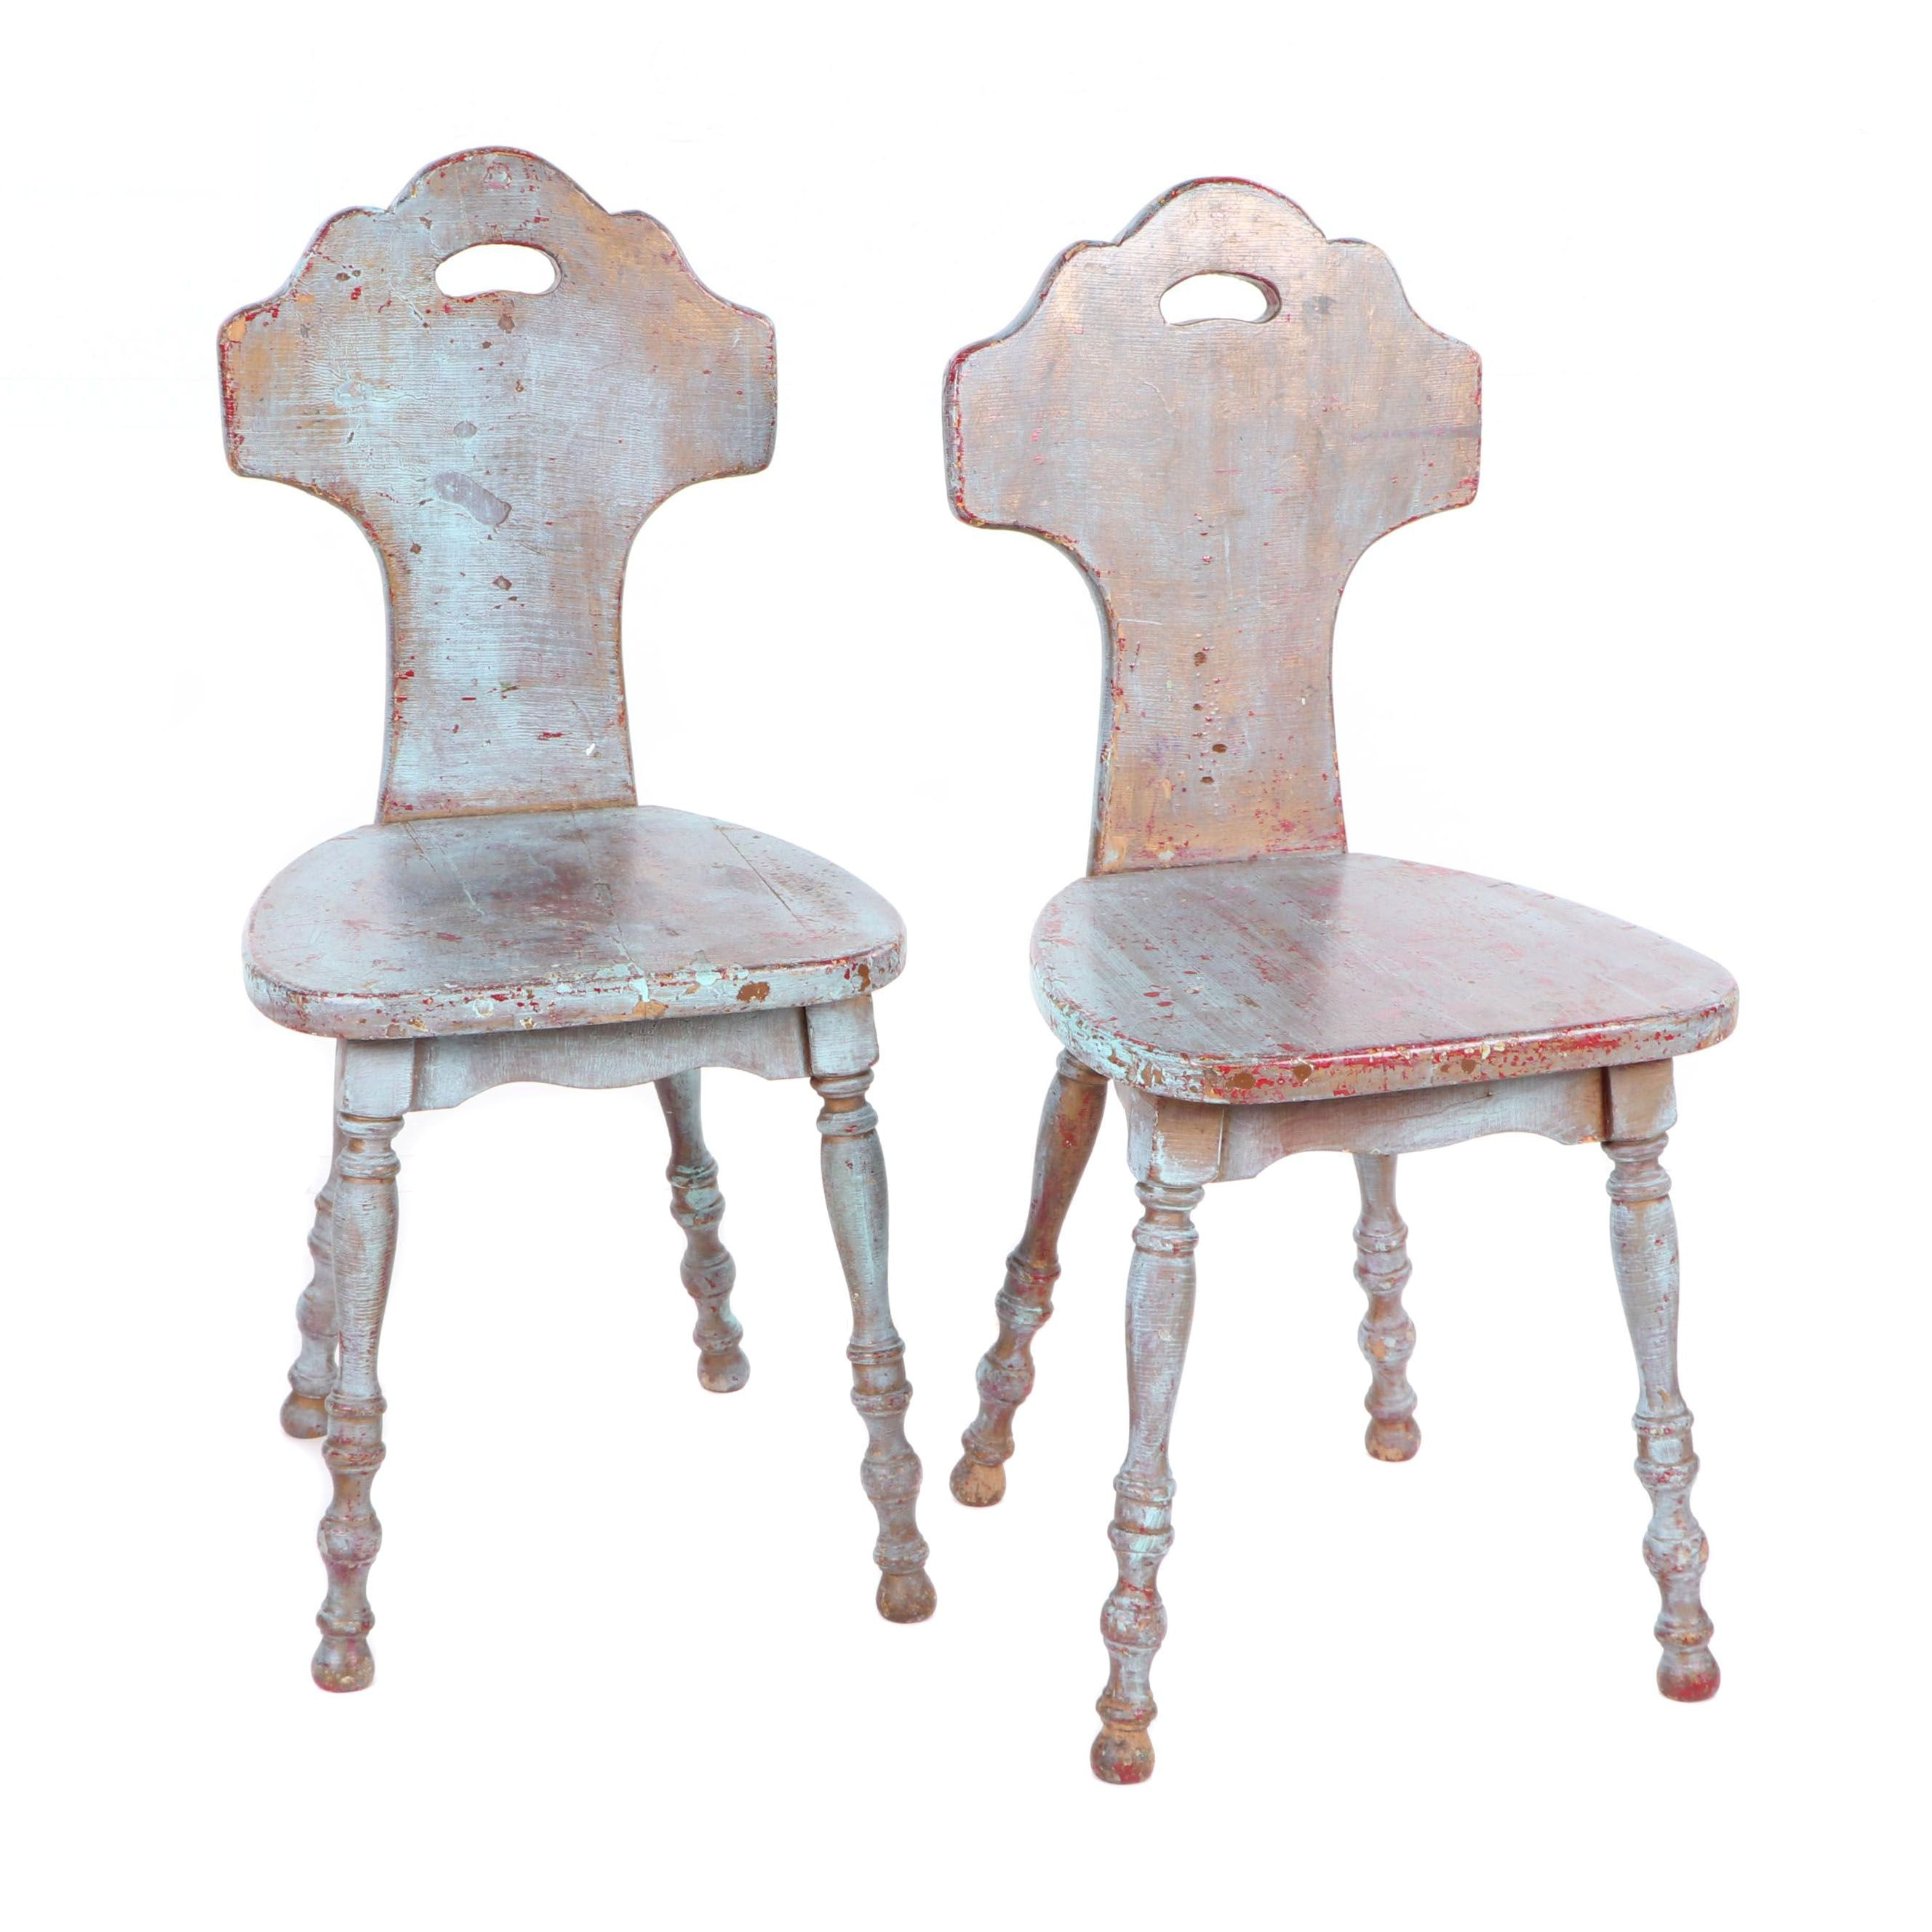 Blue Painted Sgabello Style Chairs with Turned Legs, Early 20th Century